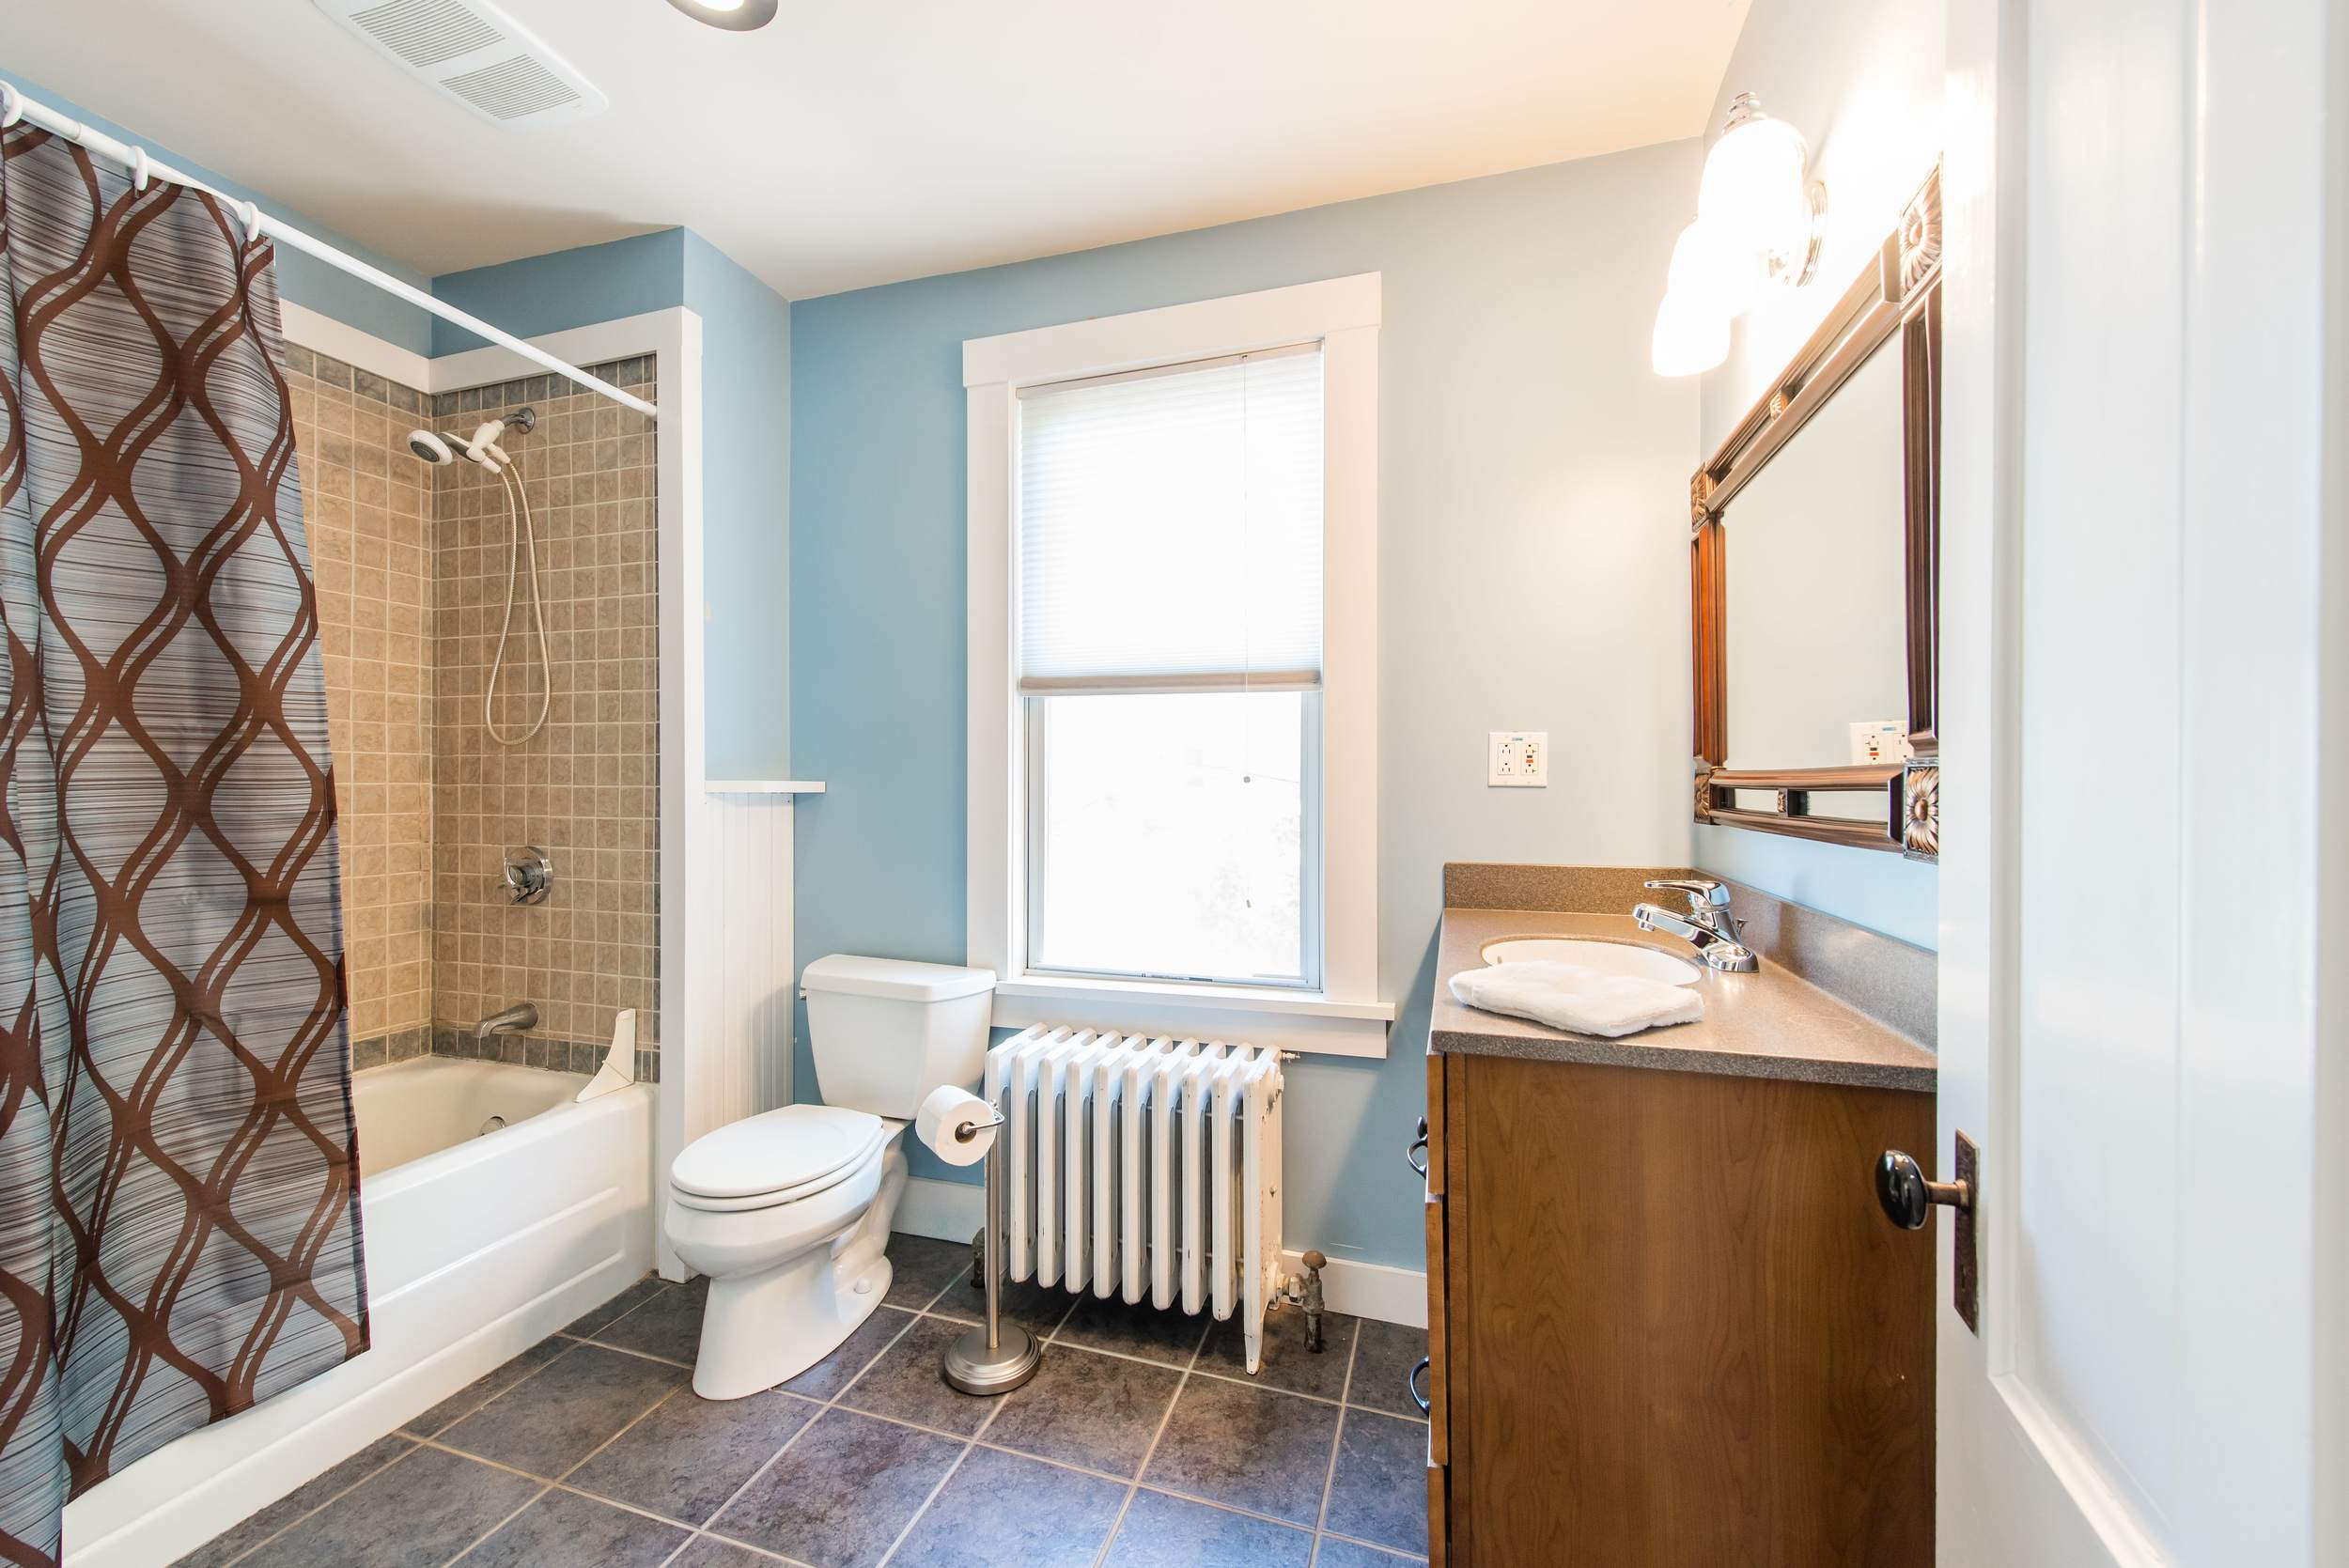 Upstairs bathroom with shower/tub.